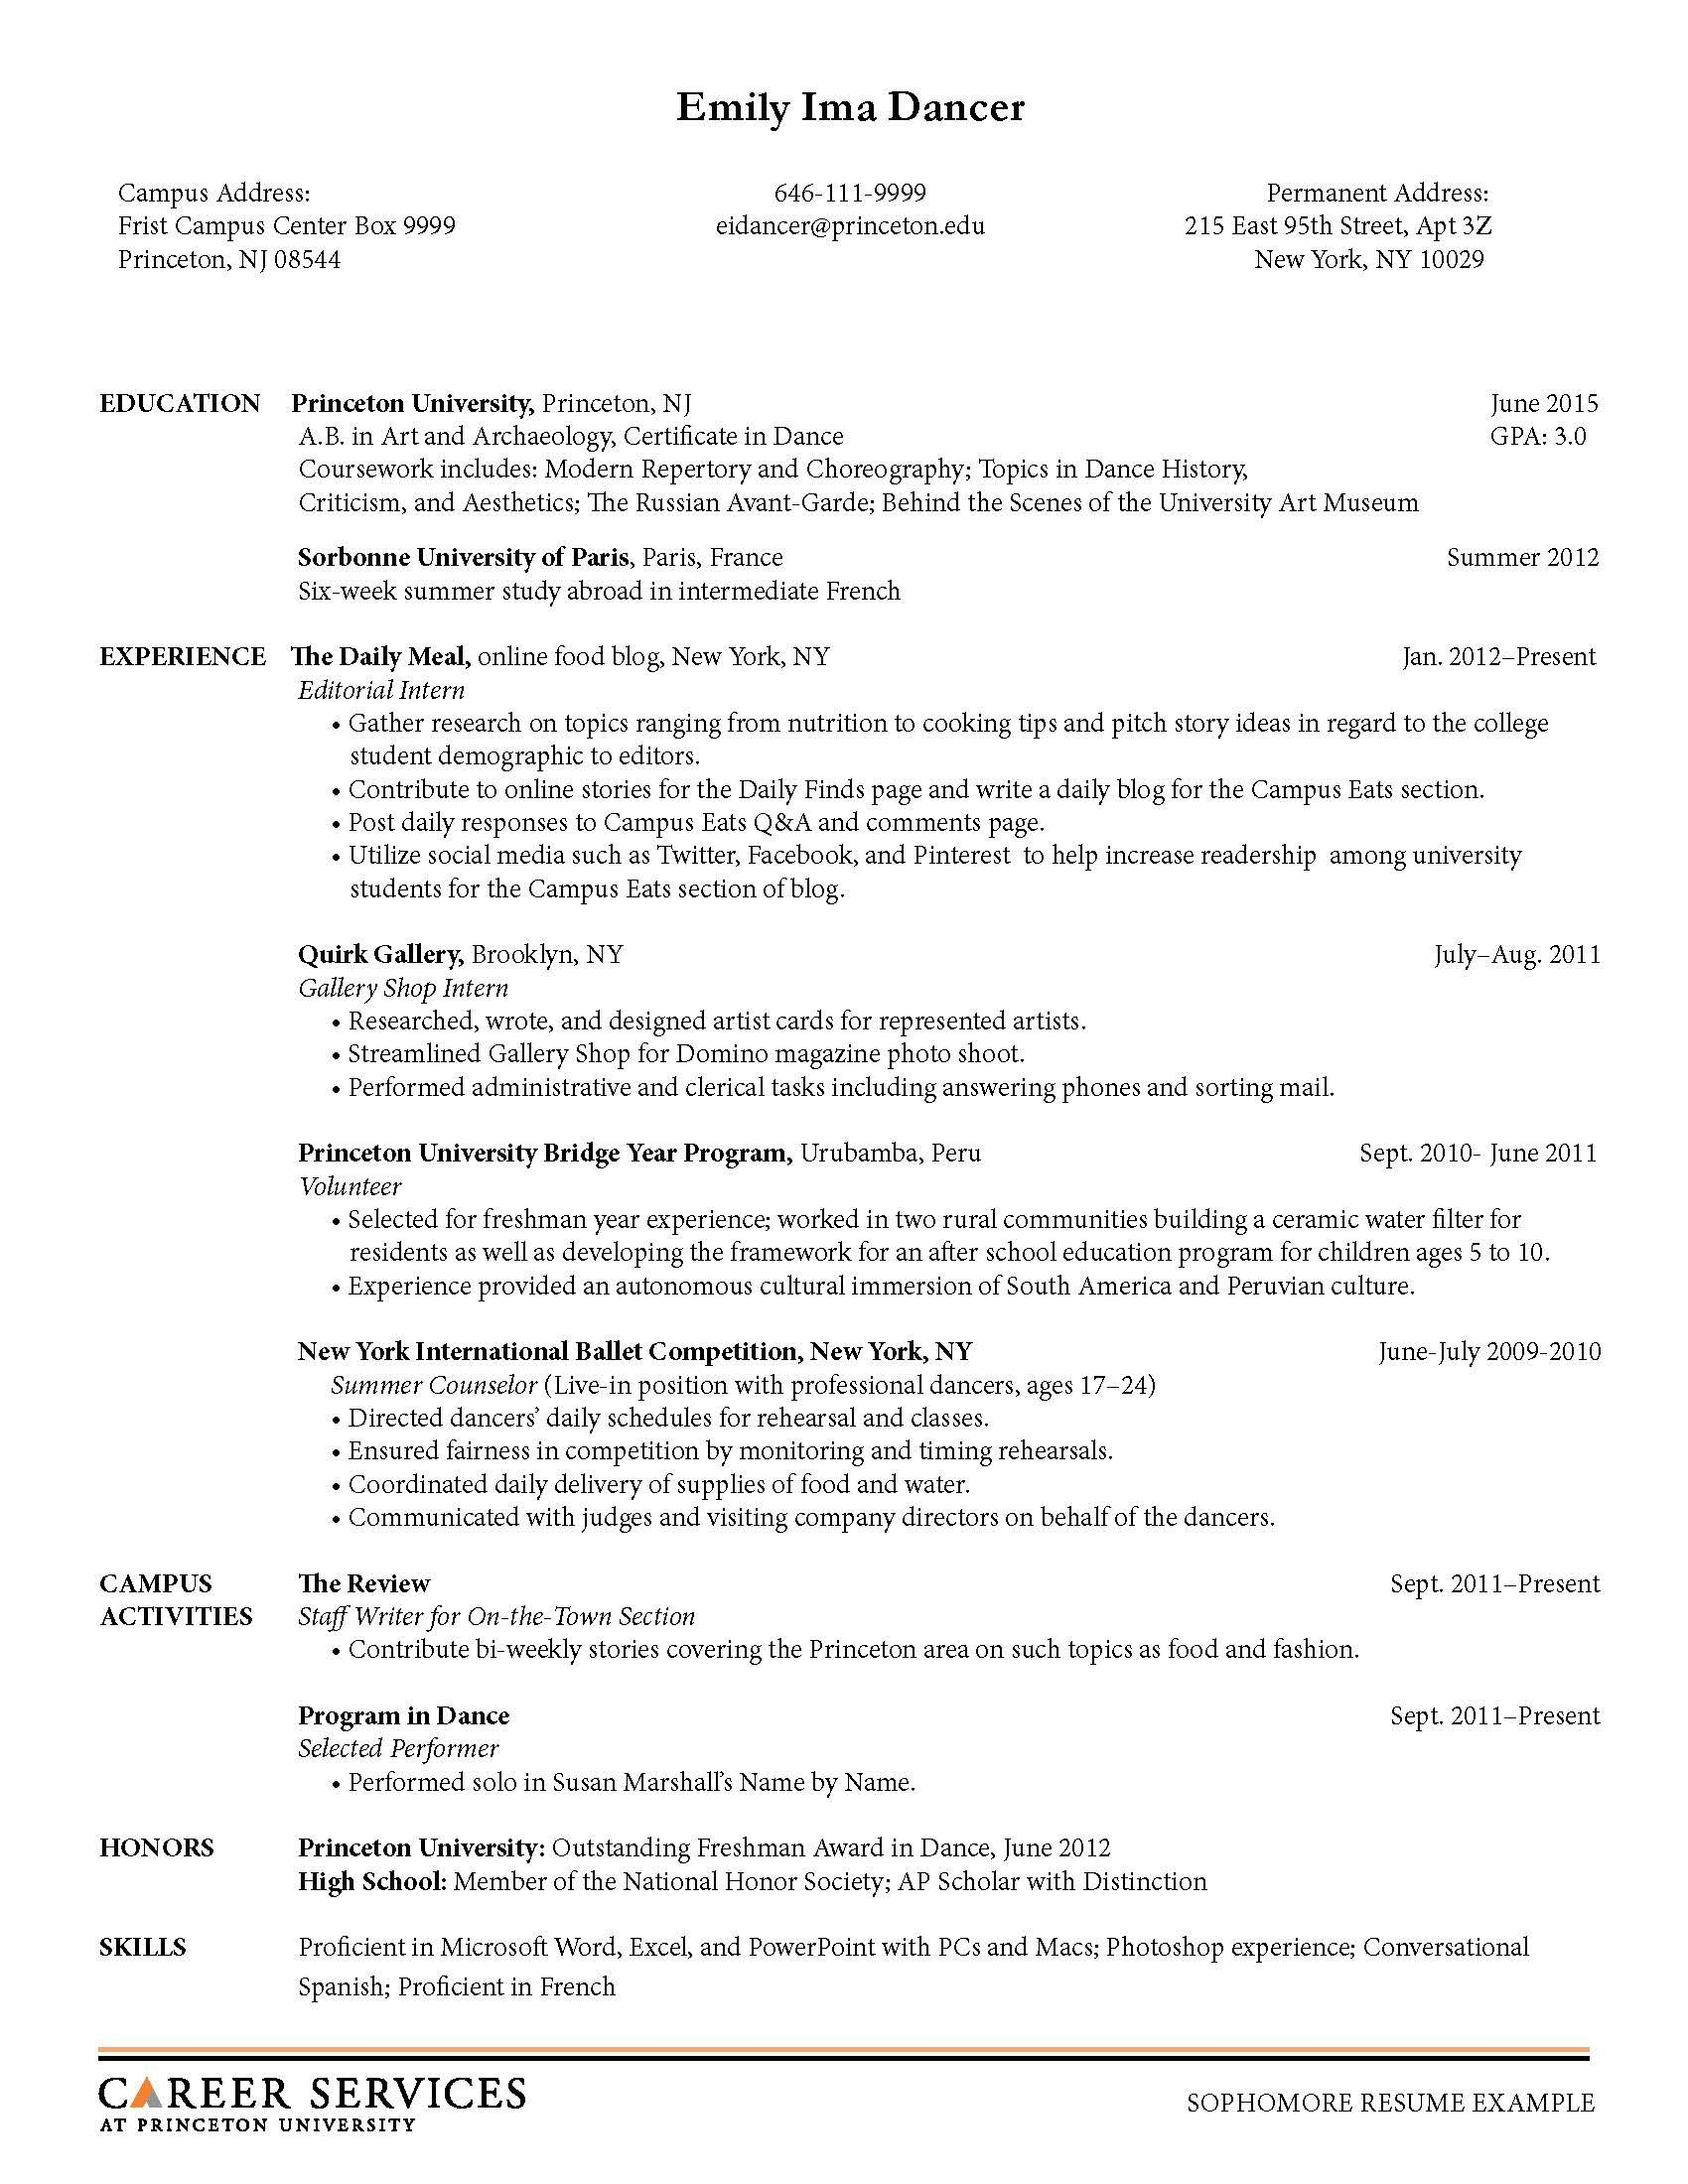 Opposenewapstandardsus  Outstanding Sample Resume Resume And Career On Pinterest With Luxury Customer Service Representative Job Description Resume Besides Resume Coursework Furthermore Best Words To Use On A Resume With Astonishing Java Developer Resume Sample Also Bank Teller Resume No Experience In Addition Make My Own Resume And Resume Clinic As Well As Wizard Resume Additionally Sample Professional Resumes From Pinterestcom With Opposenewapstandardsus  Luxury Sample Resume Resume And Career On Pinterest With Astonishing Customer Service Representative Job Description Resume Besides Resume Coursework Furthermore Best Words To Use On A Resume And Outstanding Java Developer Resume Sample Also Bank Teller Resume No Experience In Addition Make My Own Resume From Pinterestcom